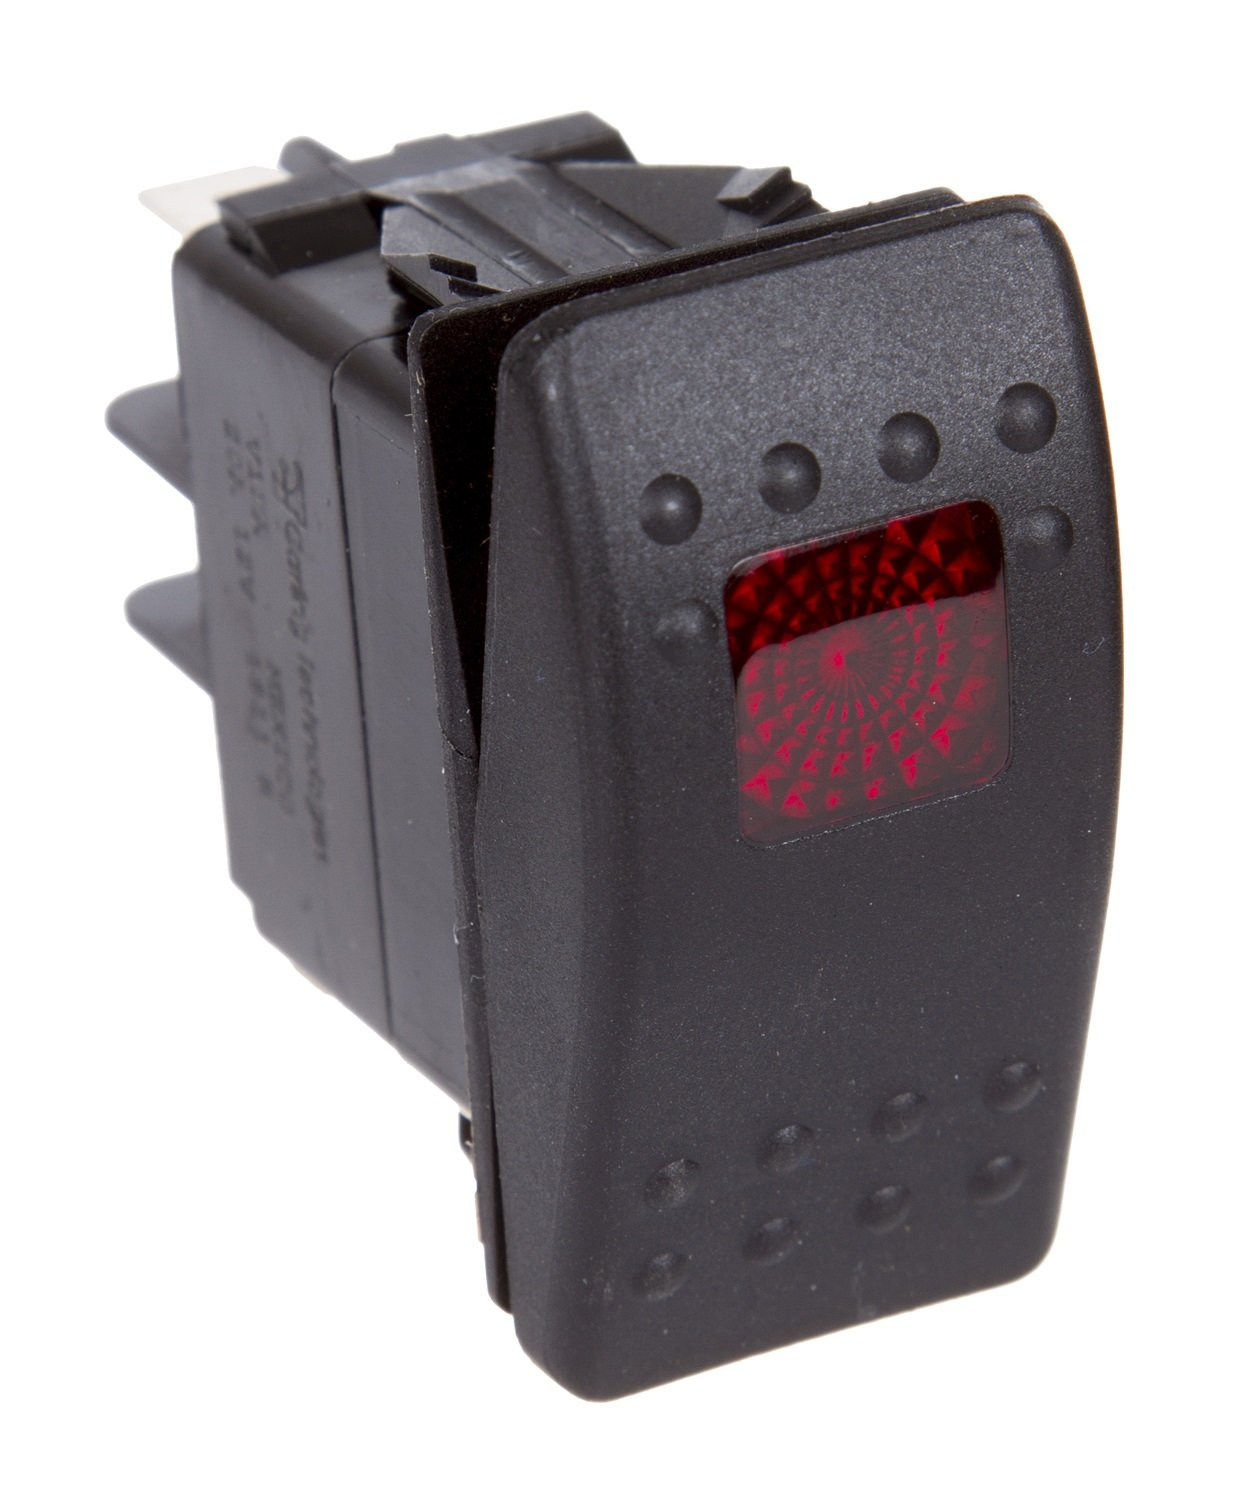 Daystar, Universal Rocker Switch with Red Light, 20 Amp, Single Pole, KU80014, Made in America, Amber